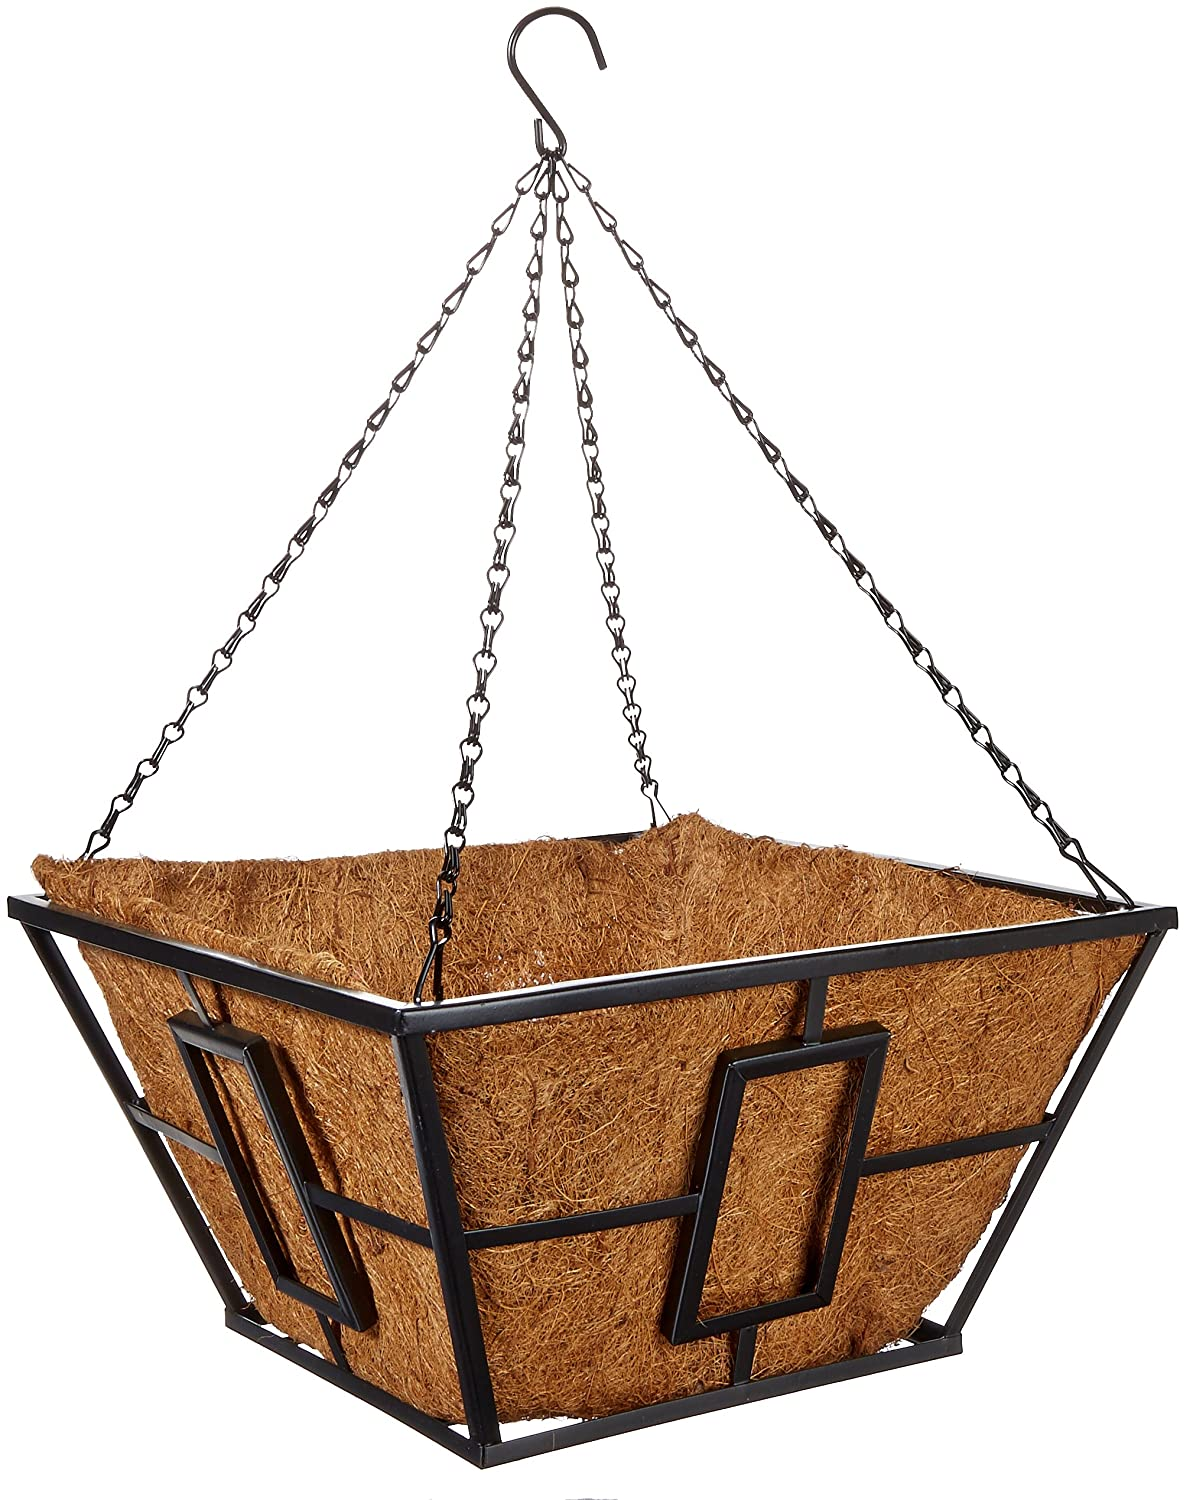 Panacea Products Corp-Import 87850 14 , Black, Square Contemporary Style Hanging Basket